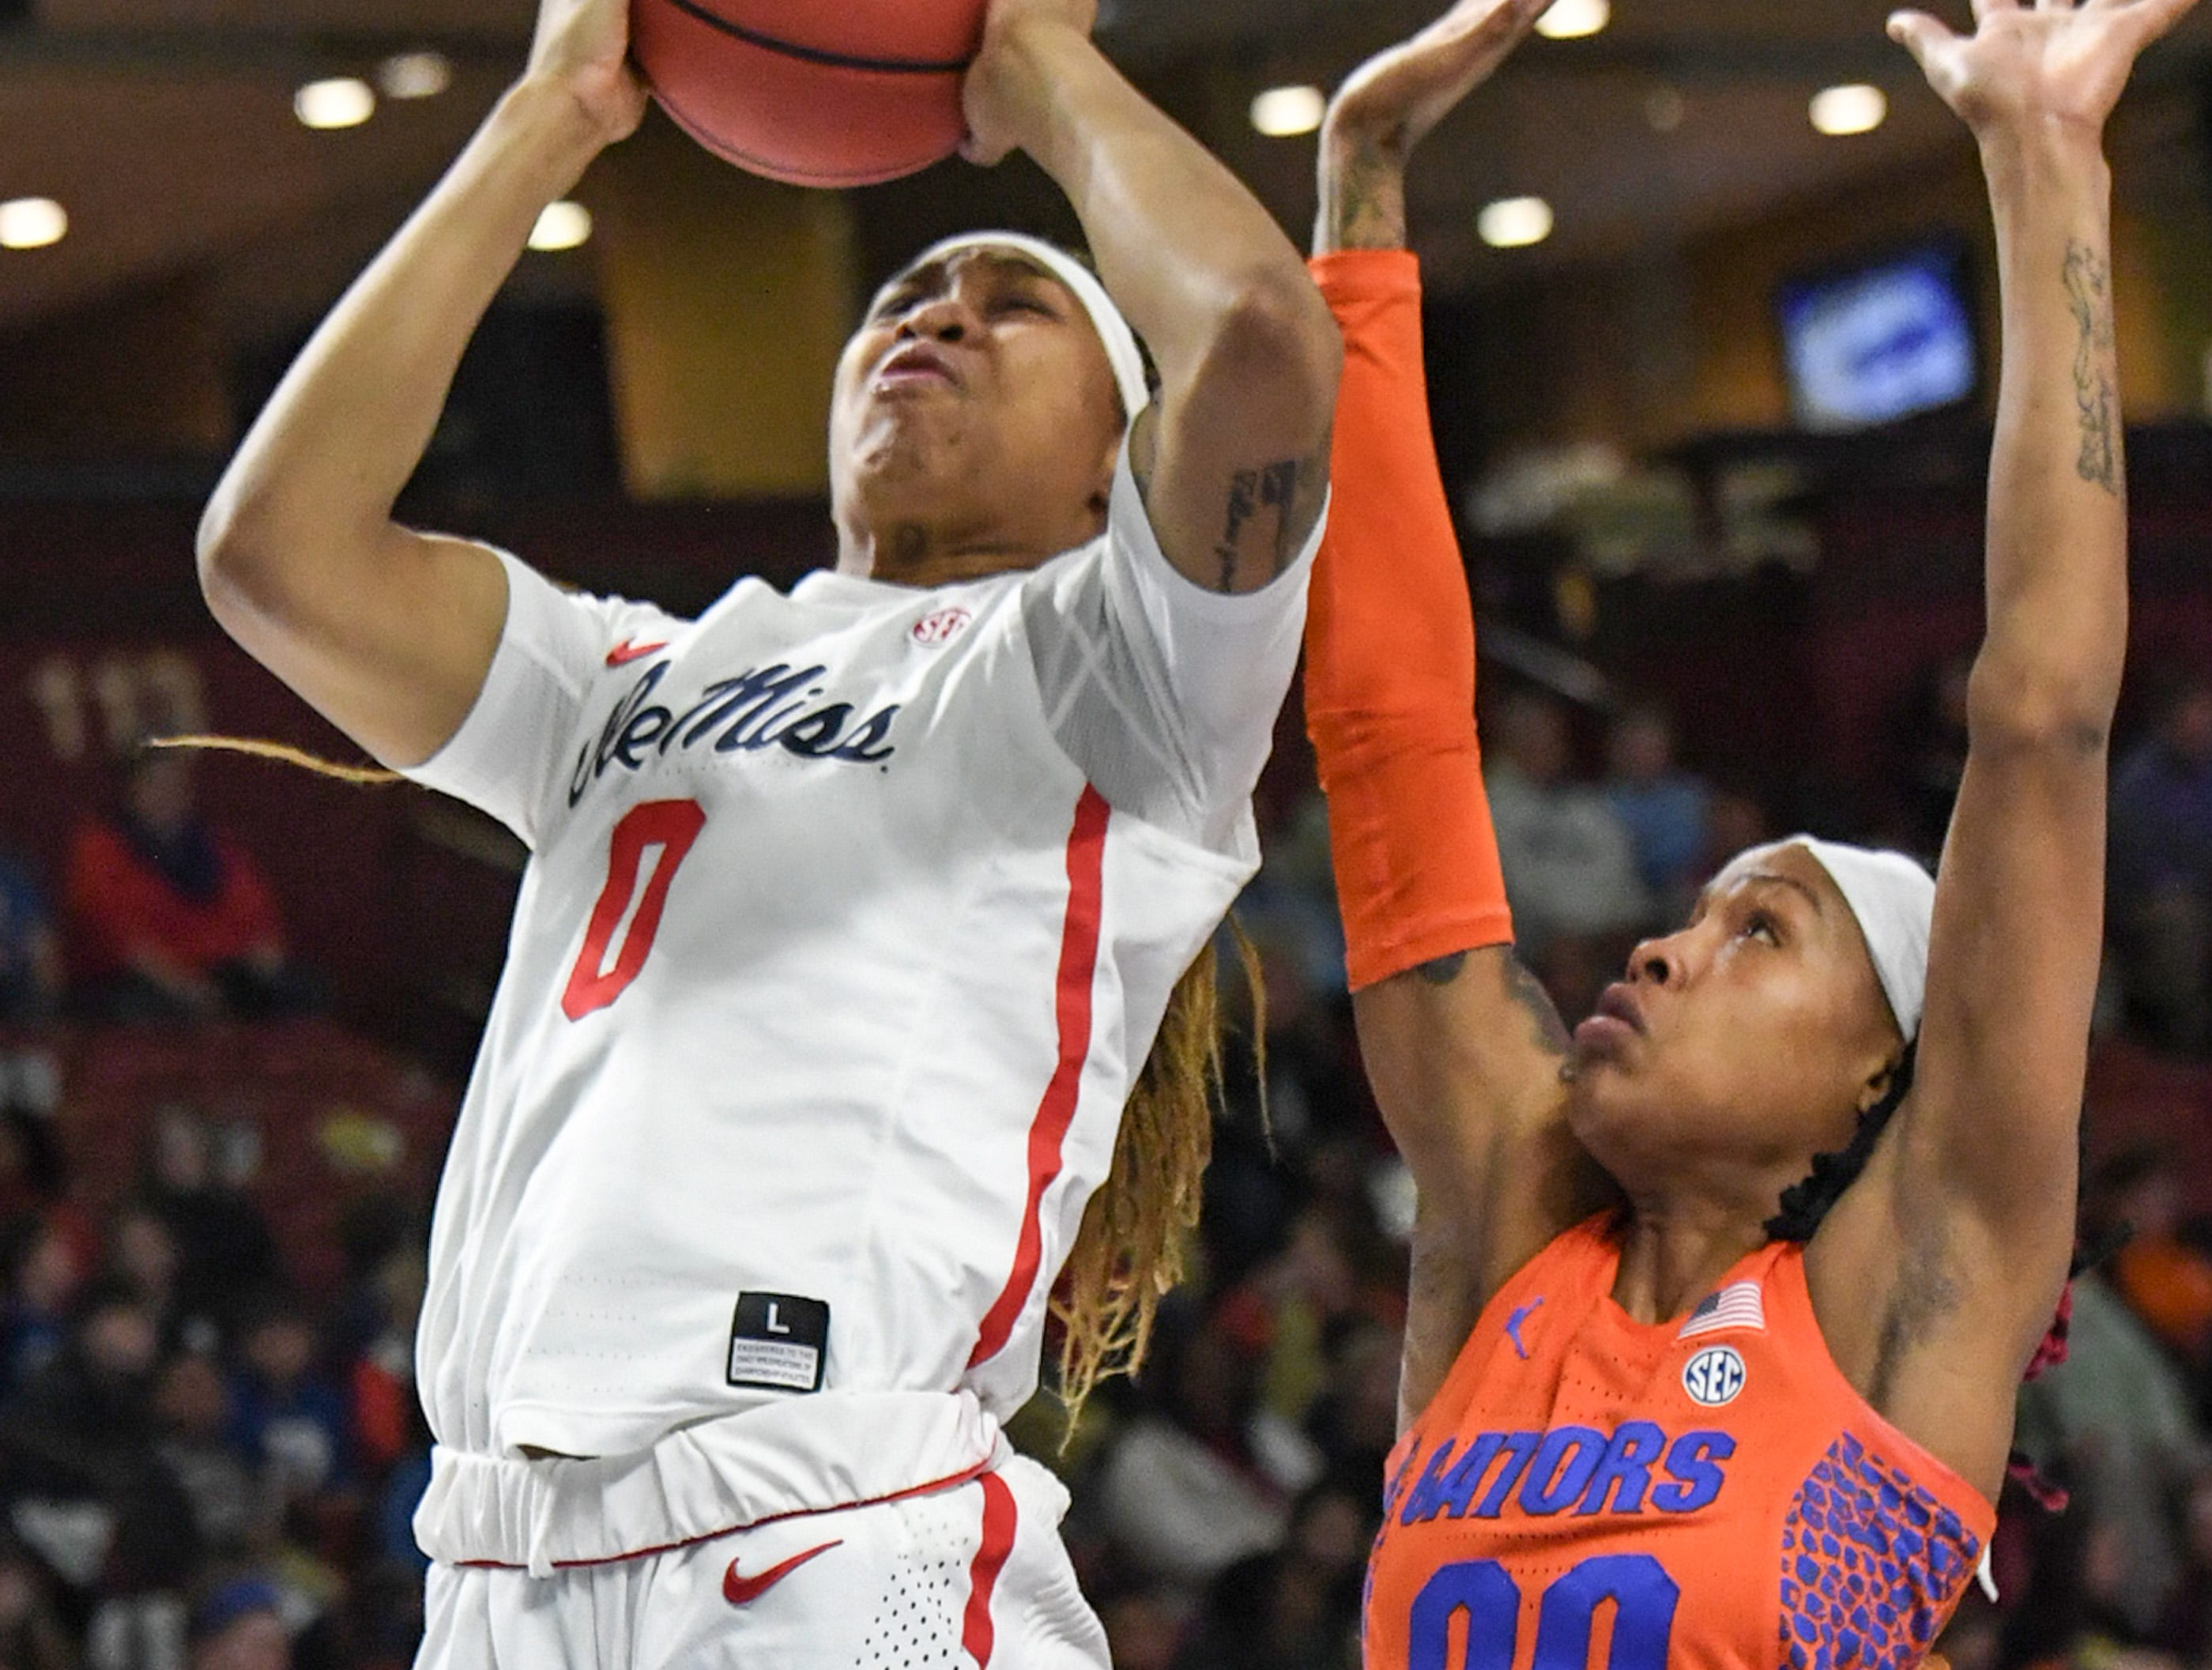 Ole Miss freshman Gabby Crawford(0) shoots near Florida guard Delicia Washington(0) during the first quarter of the Southeastern Conference Women's Tournament game at Bon Secour Wellness Arena in Greenville Wednesday, March 6, 2019.